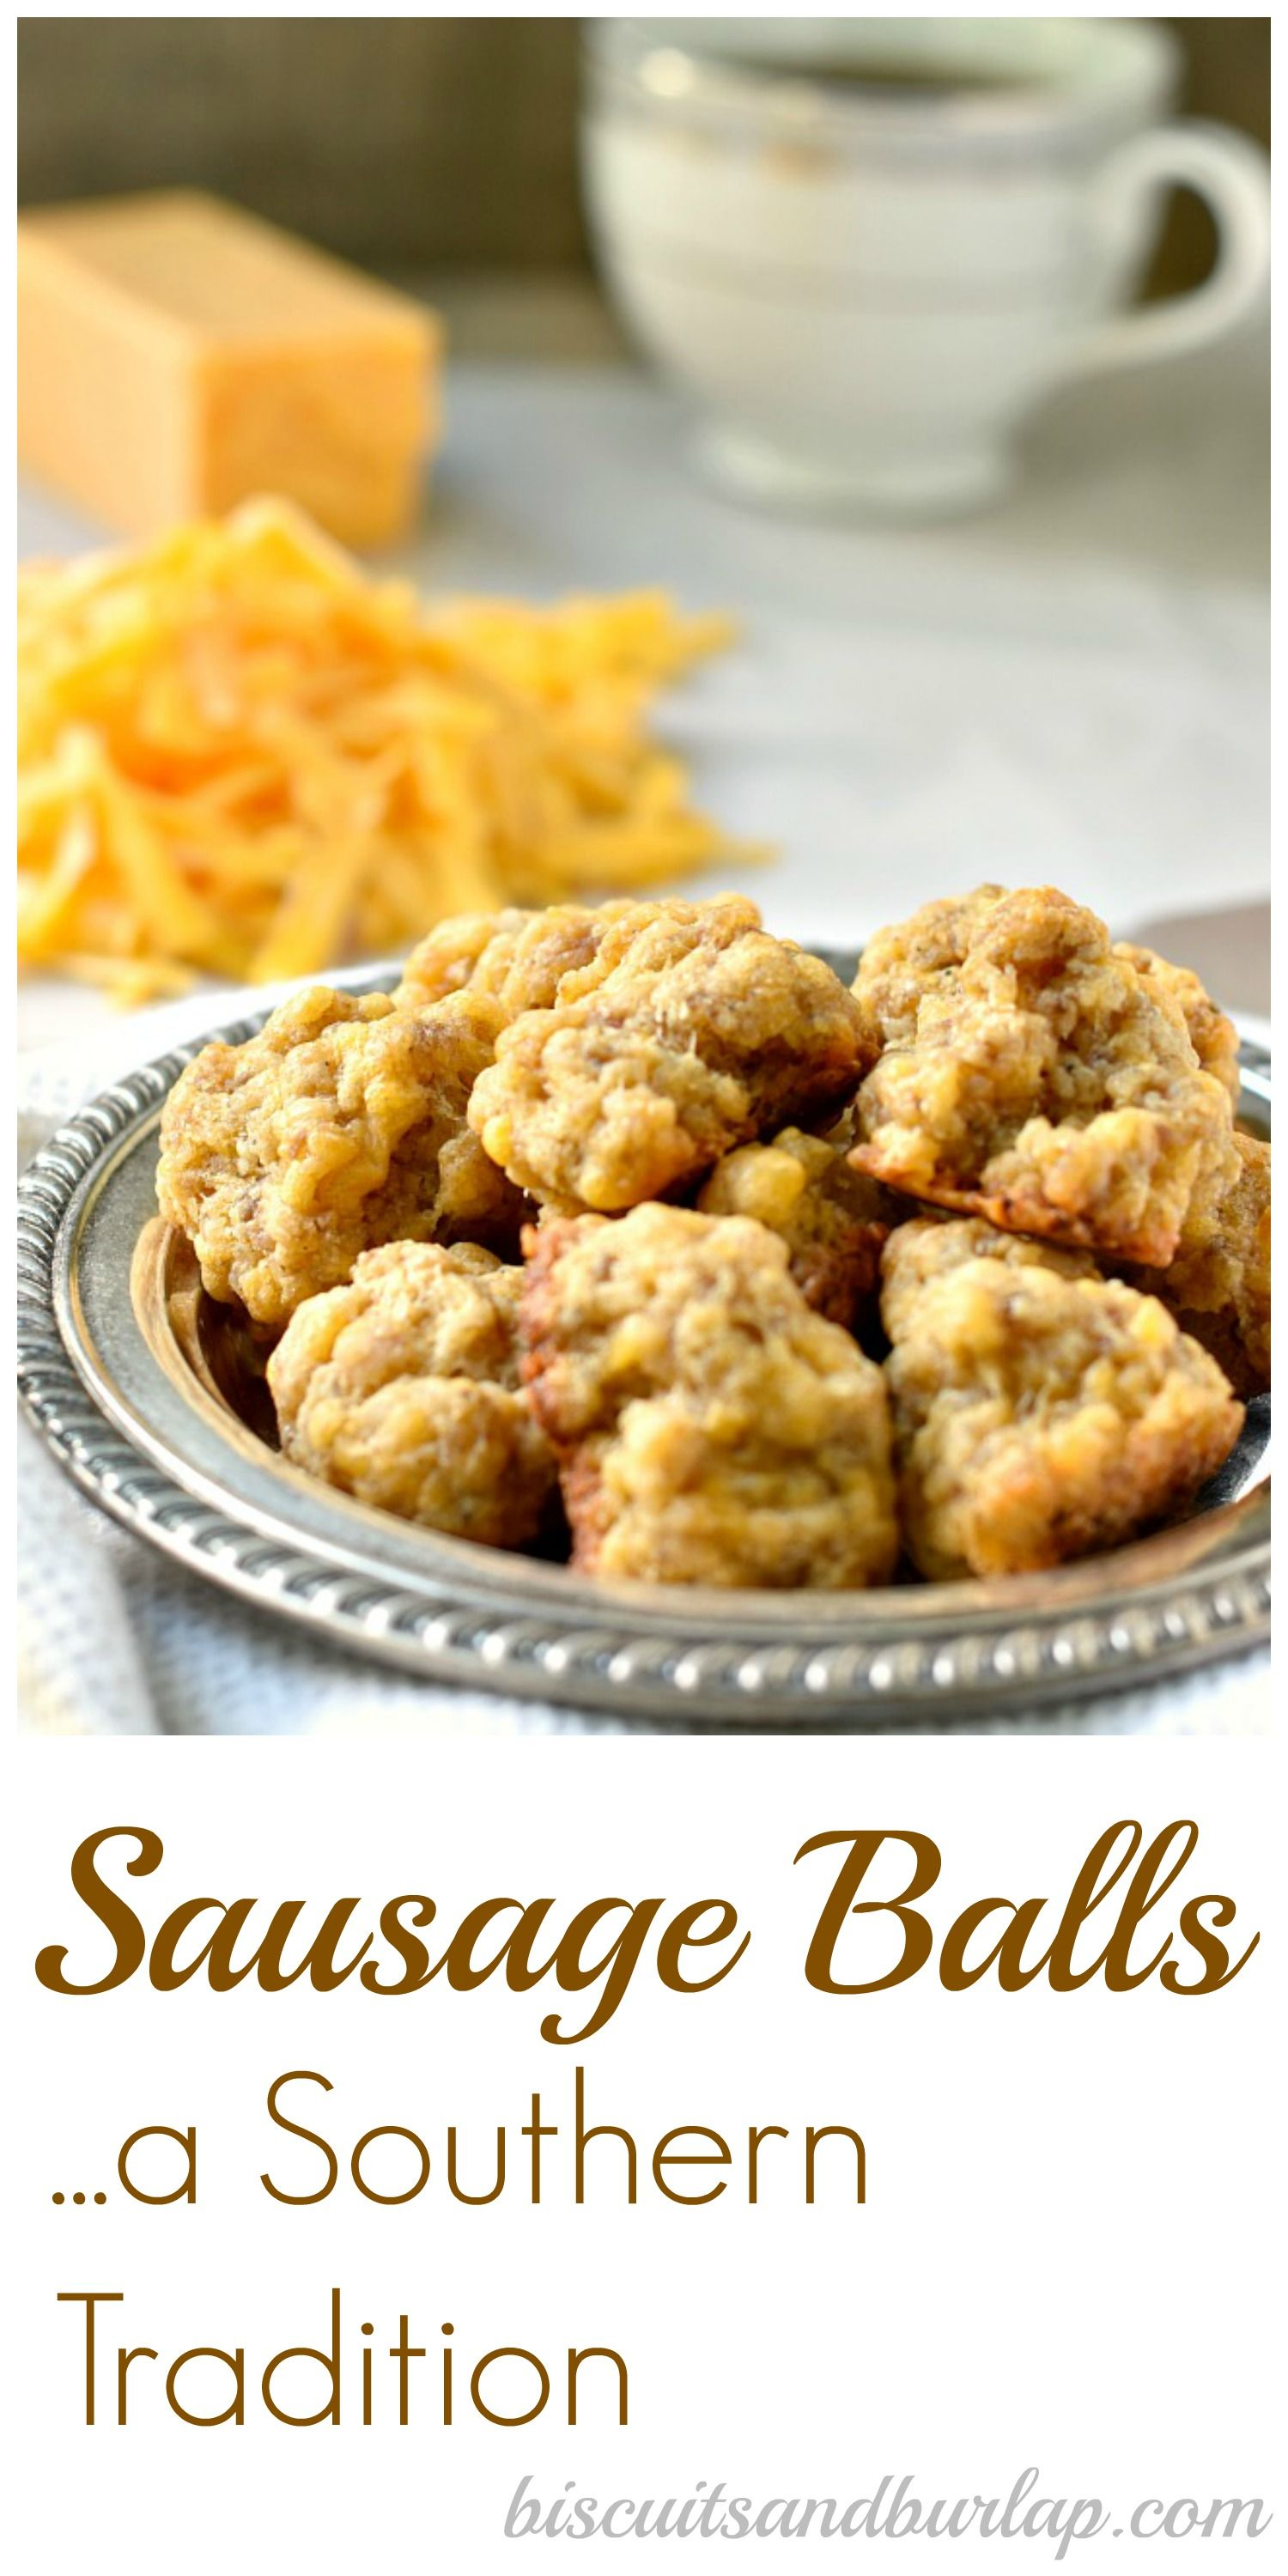 Sausage balls recipe sausage tasty and food often made at christmas but sausage balls are a tasty treat anytime forumfinder Choice Image